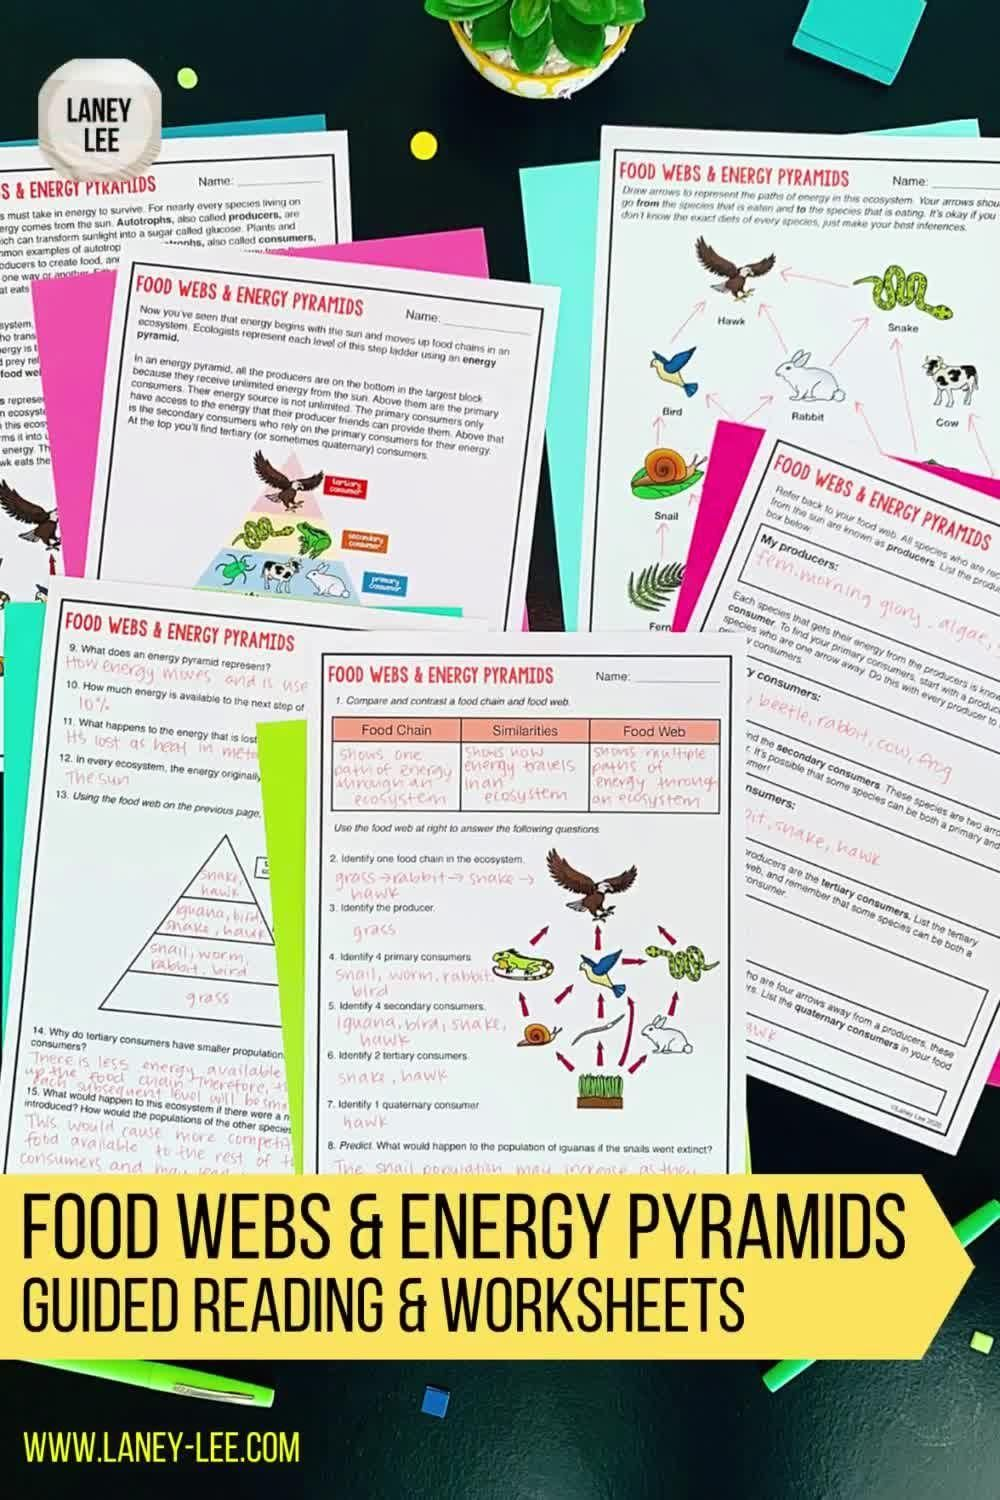 Food Chains Food Webs Energy Pyramids Guided Reading Worksheets Video In 2021 Guided Reading Worksheets Middle School Science Middle School Science Class [ 1500 x 1000 Pixel ]